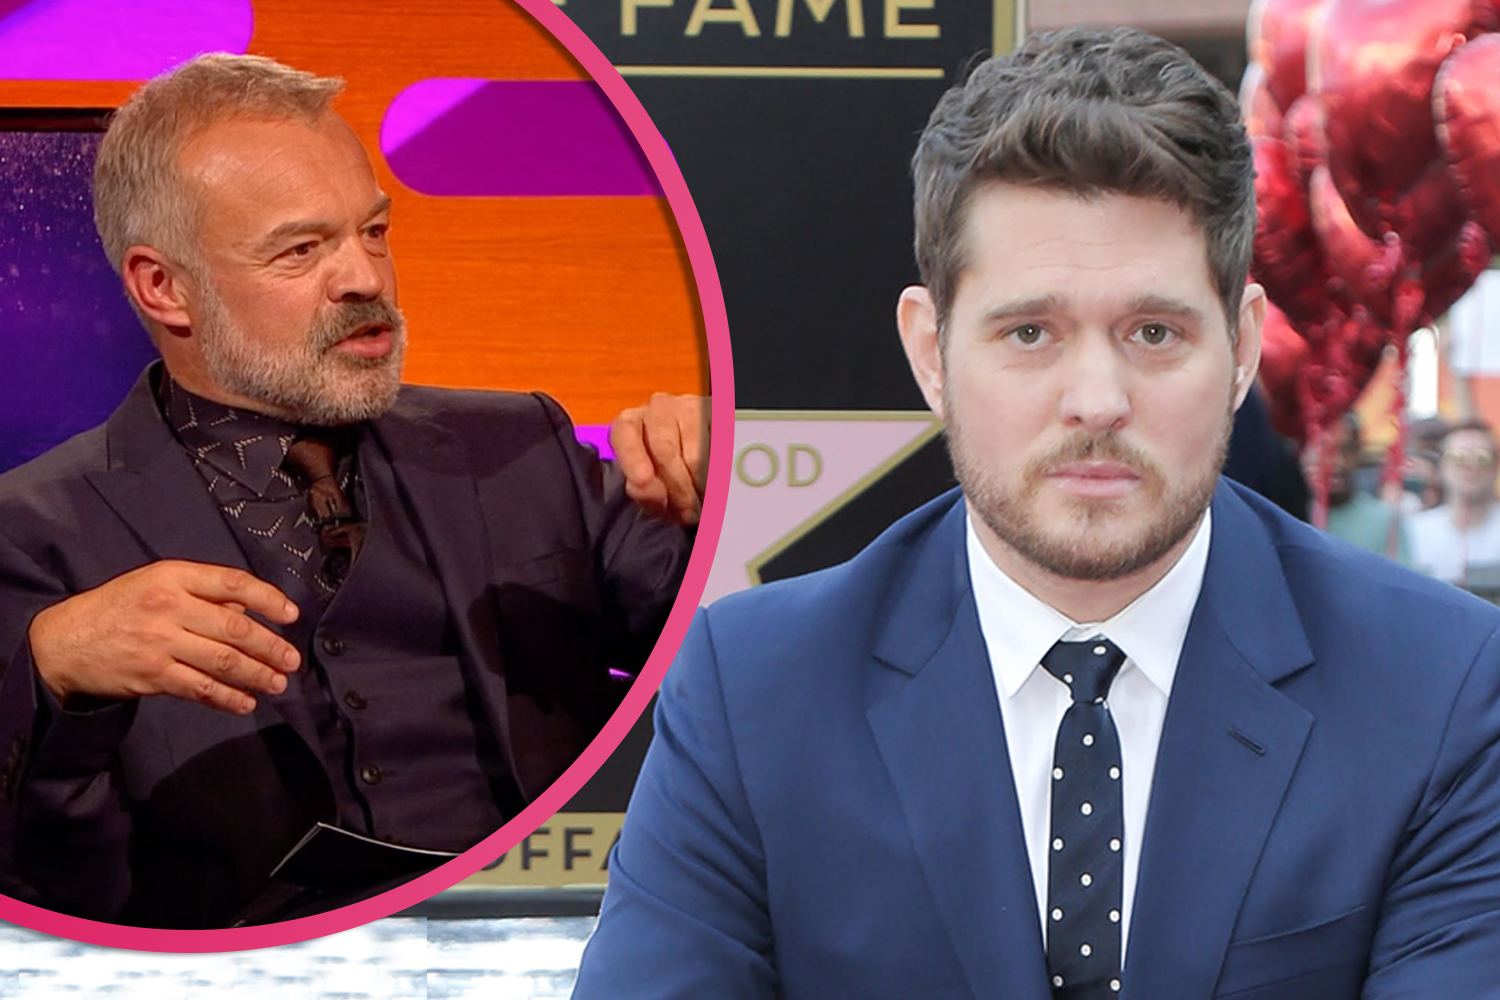 Michael Buble tells Graham Norton he suffers dad guilt as he likens lockdown to son's illness